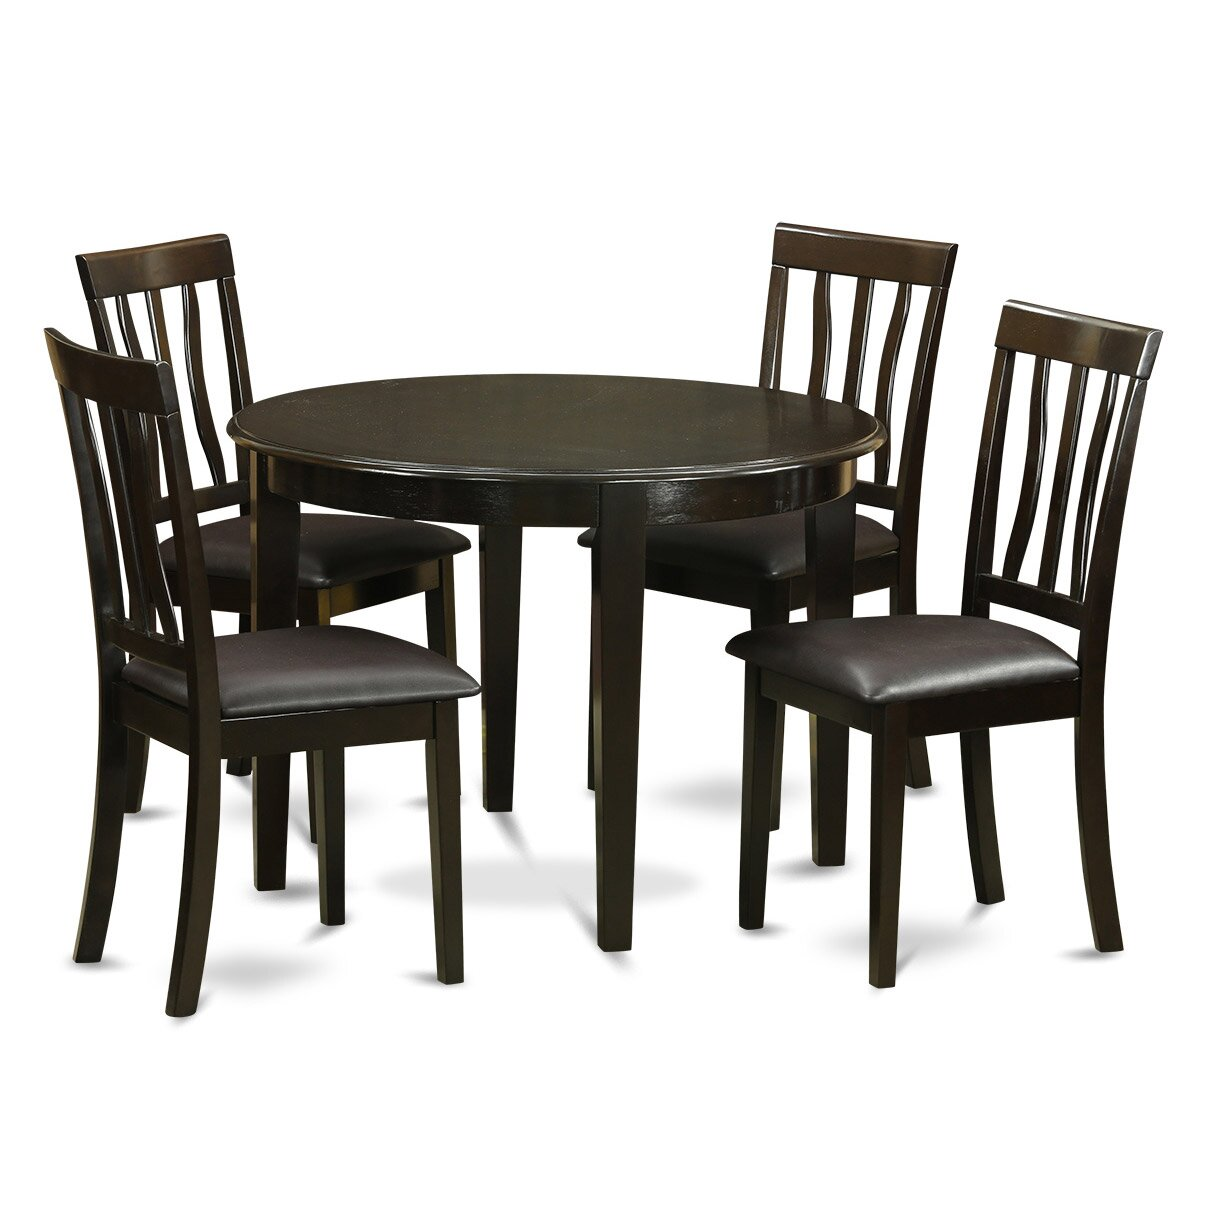 3 Piece Small Kitchen Table And Chairs Set Round Table And: Wooden Importers Boston 5 Piece Dining Set